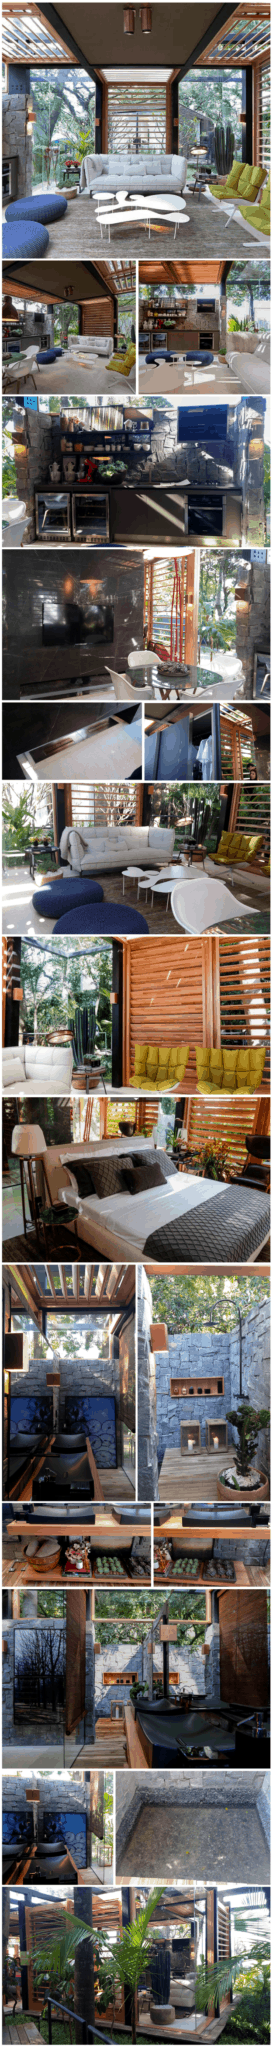 david-bastos-casa-do-bosque-casa-cor-decorar-com-charme